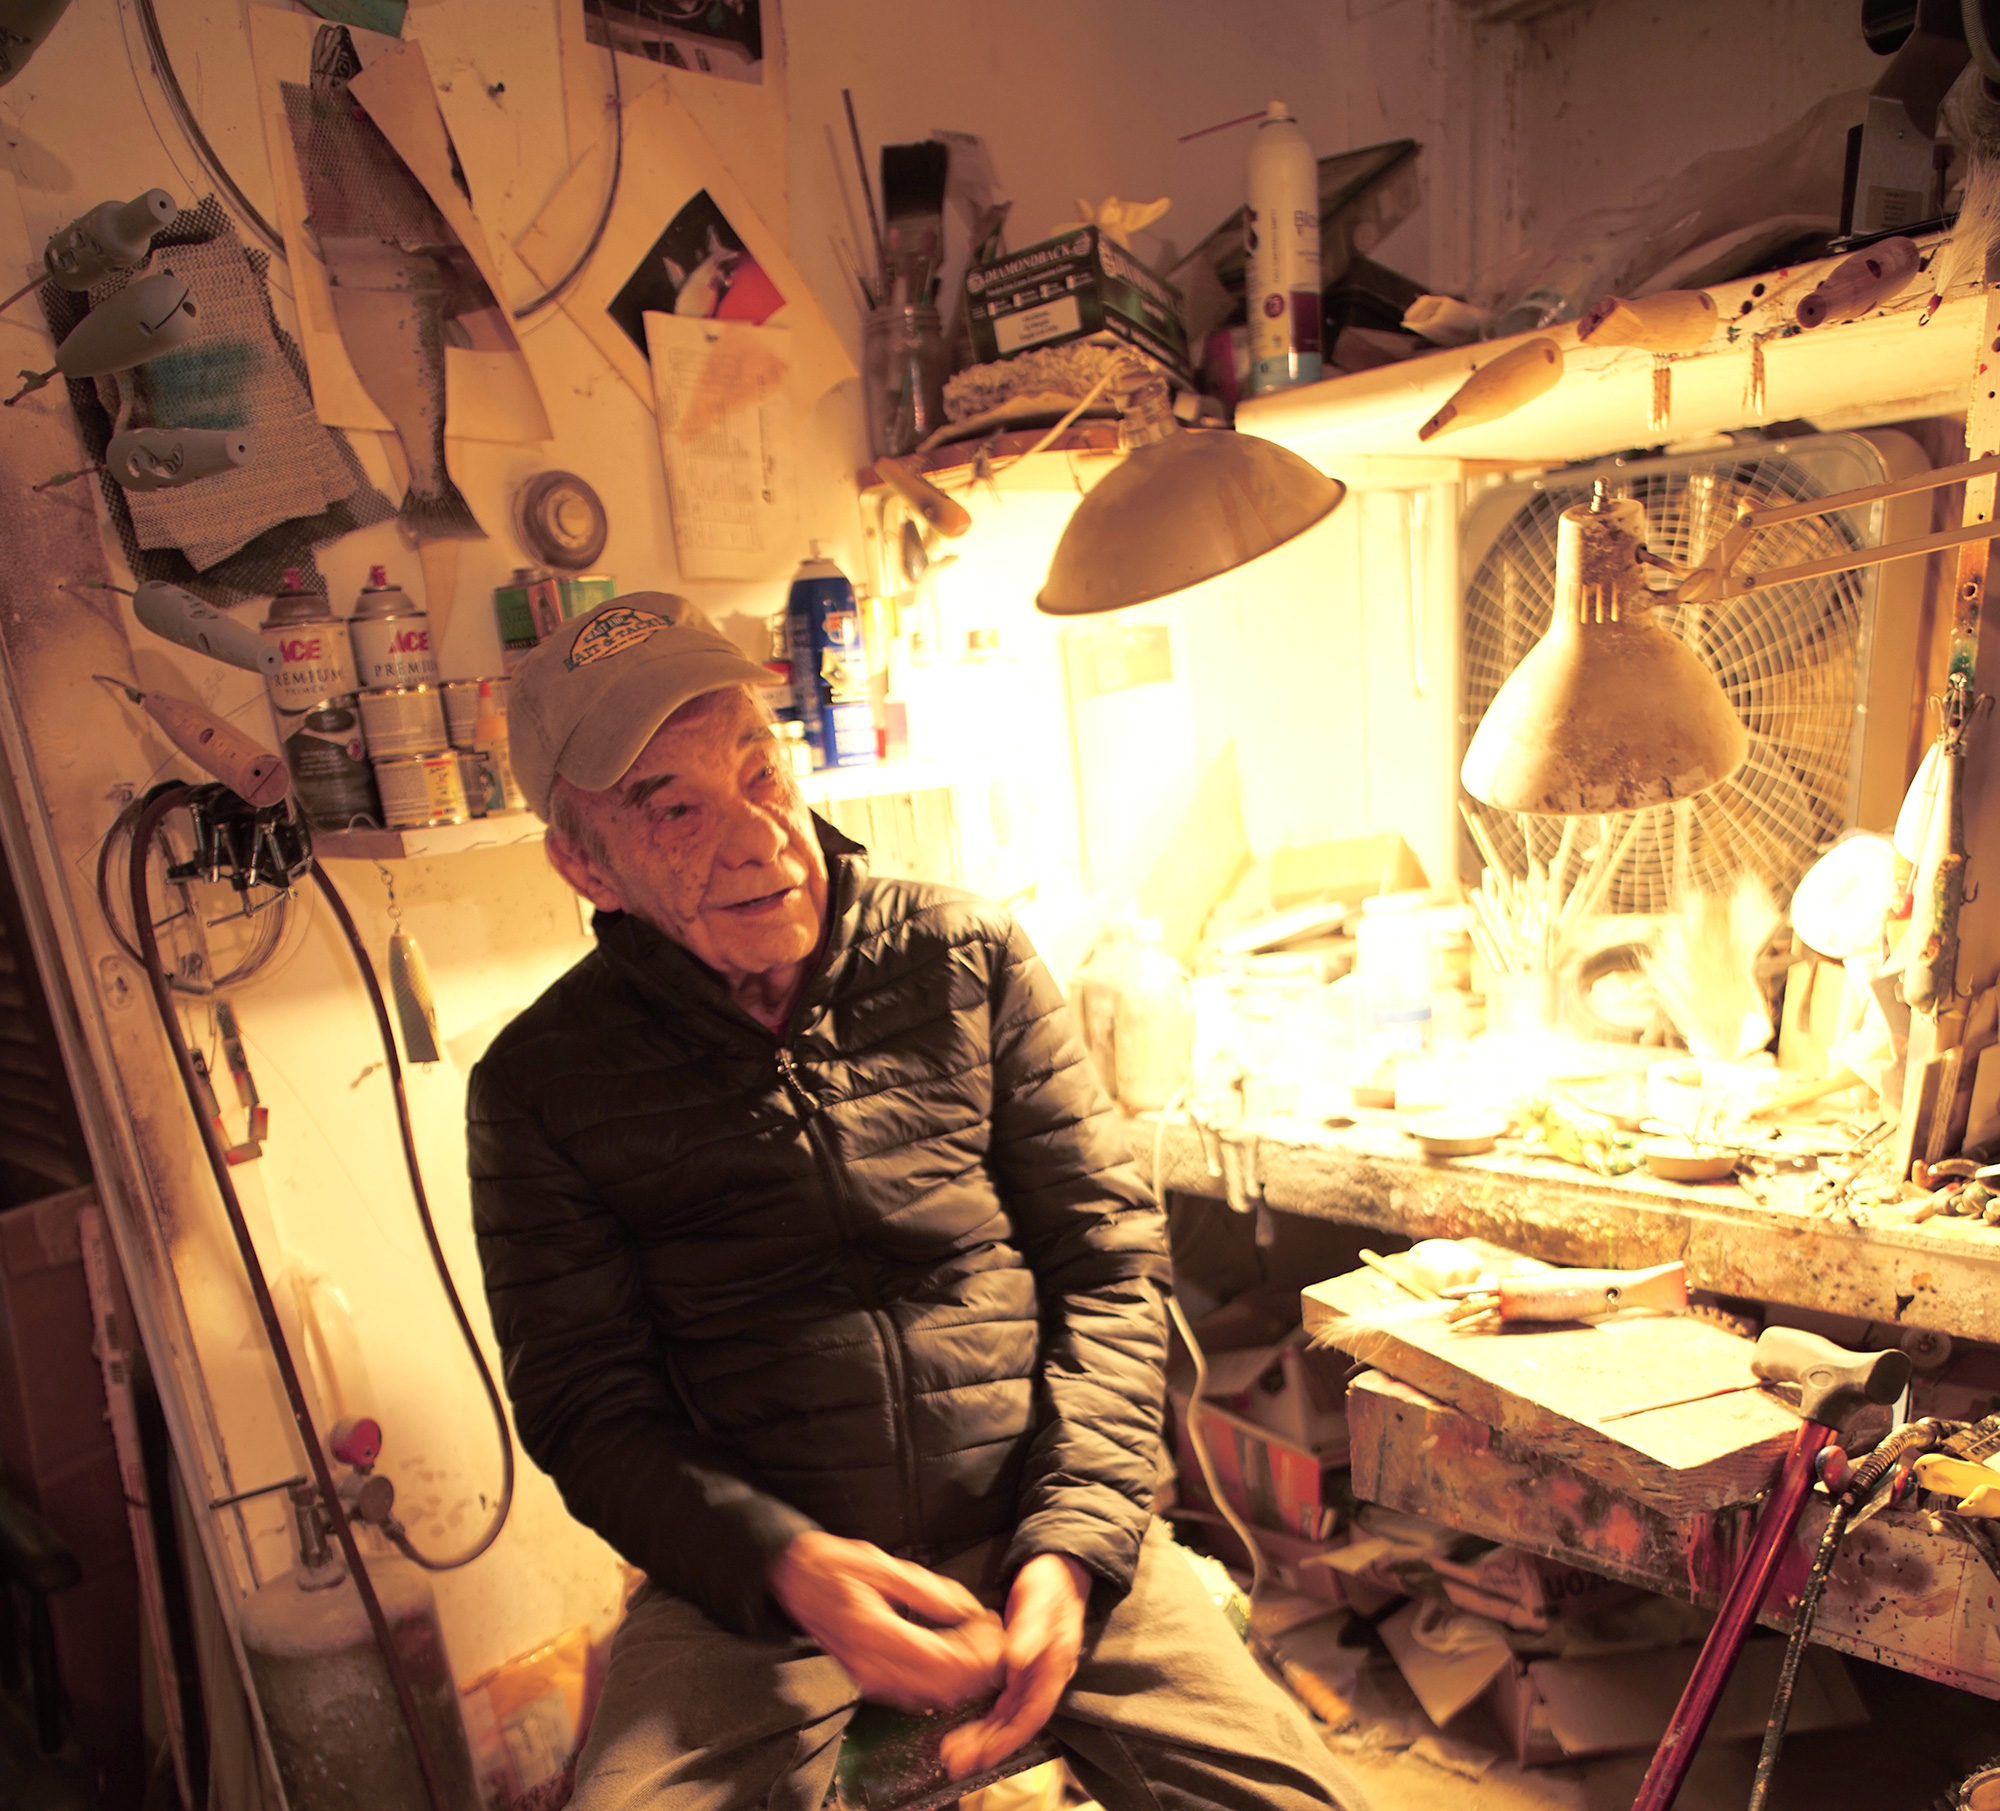 Aage Bjerring in his studio in Water Mill, New York